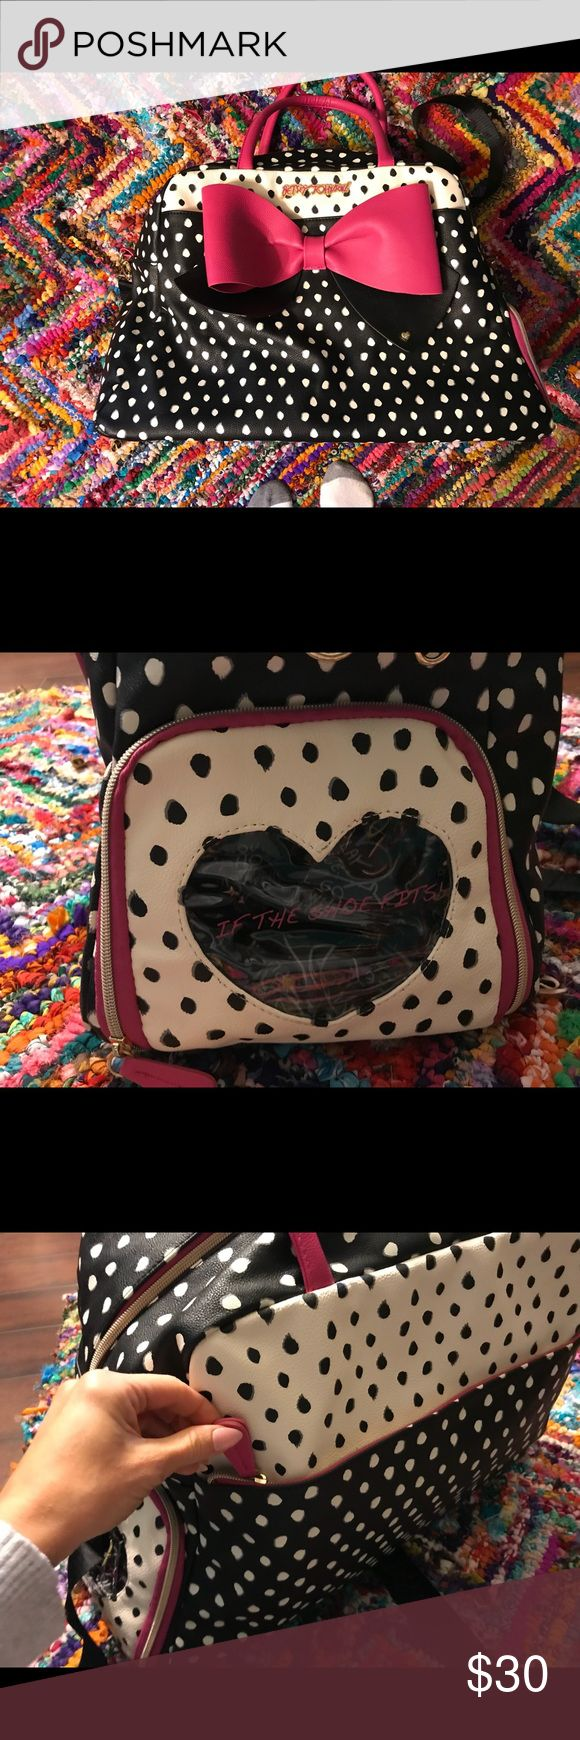 Betsey Johnson Polka Dot Weekender with Pink Bow 20x13x9 in size. I've barely used this, and the only imperfection is that the bow needs an easy fix. It needs to be sewn back on to the bag on one side (as pictured). I can do it for you, if you want me to, but I want to make sure the buyer is aware. Price reflects. This thing has pockets for days! One on each end, one on front and back, and on both sides inside as well. It can be used as a diaper bag. I used it as a weekend tote once, and…